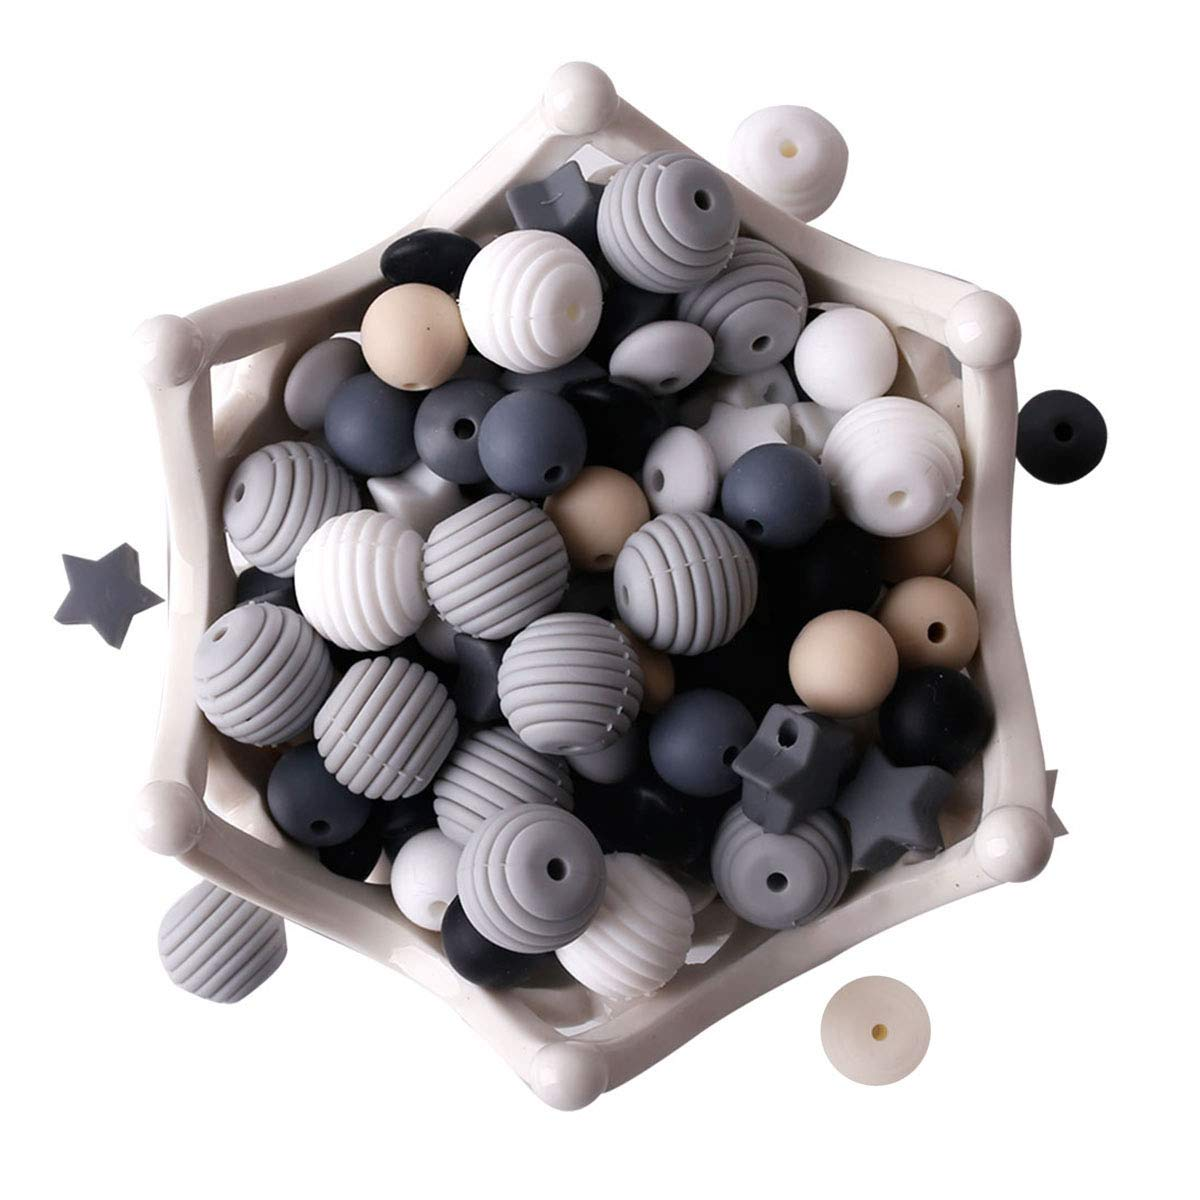 Silicone Beads 100pcs Beads Black and White Series DIY Jewelry Nursing Necklace Accessories